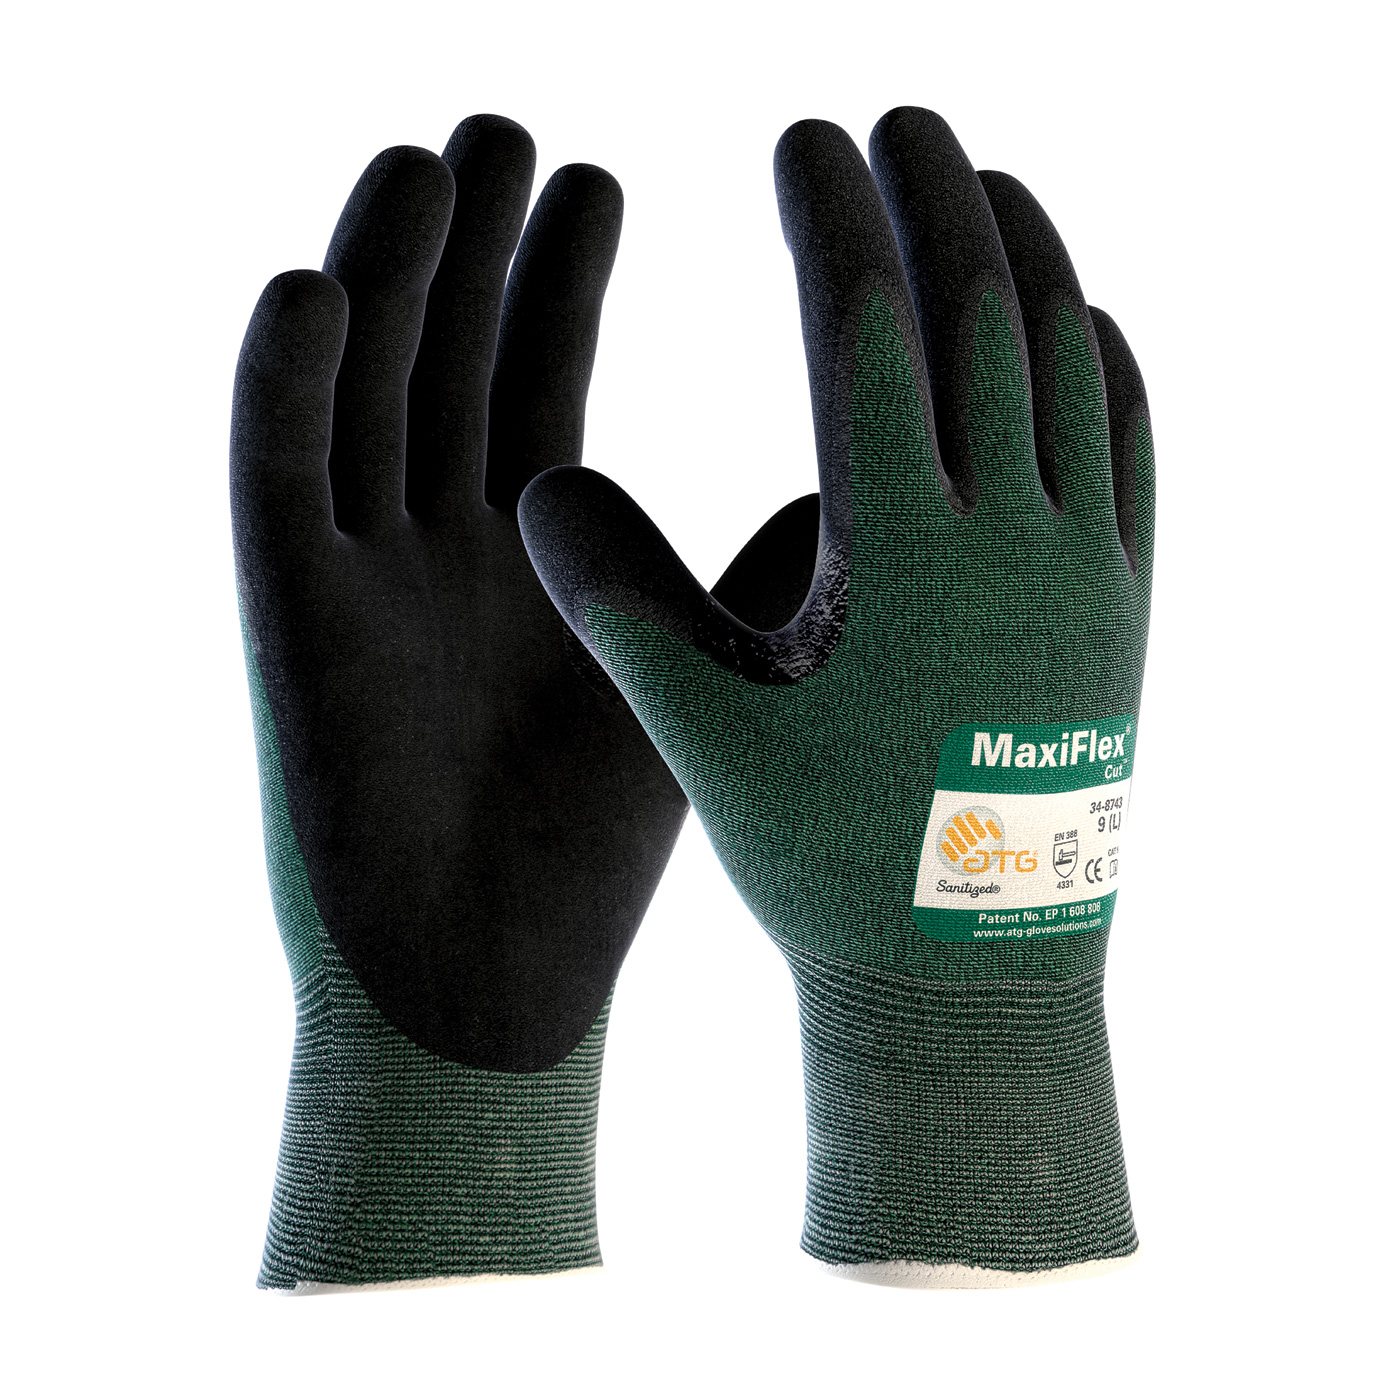 PIP 34-8743/L LARGE MAXIFLEX NITRILE GLOVE CUT LEVEL 3